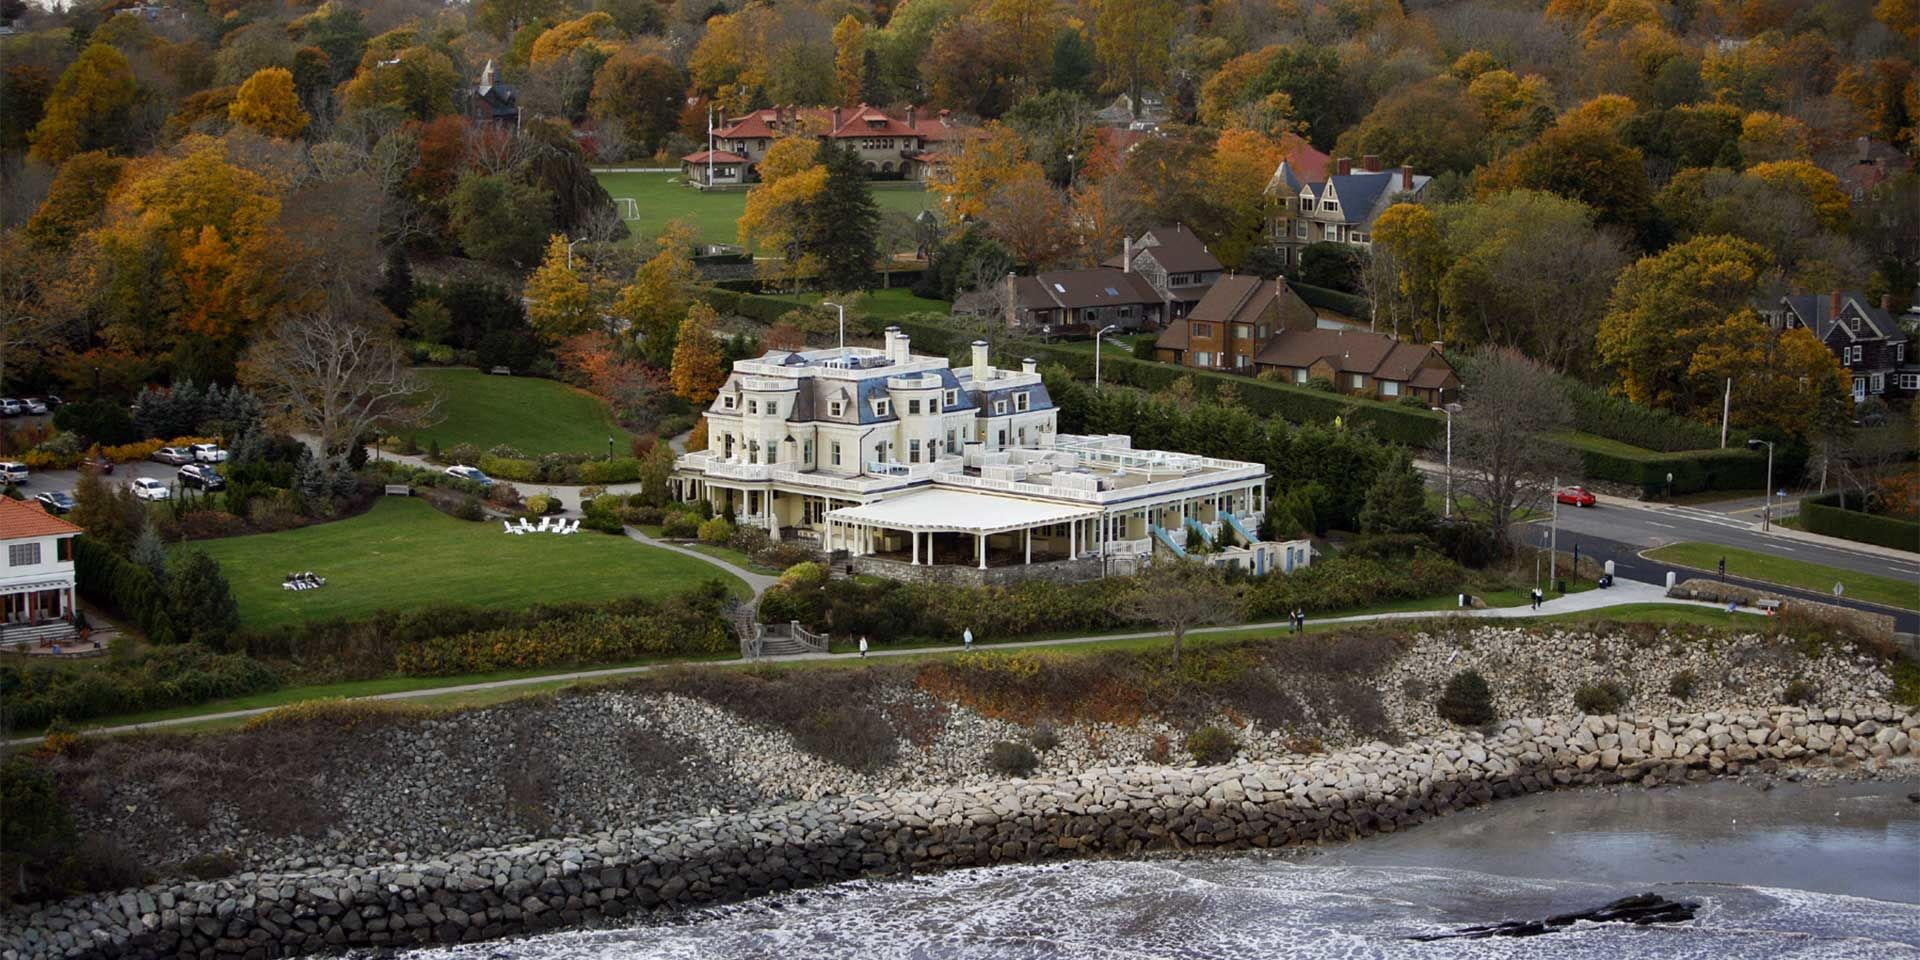 Aerial view of The Chanler at Cliff Walk with Fall Foliage and the Newport Pell Bridge in the background